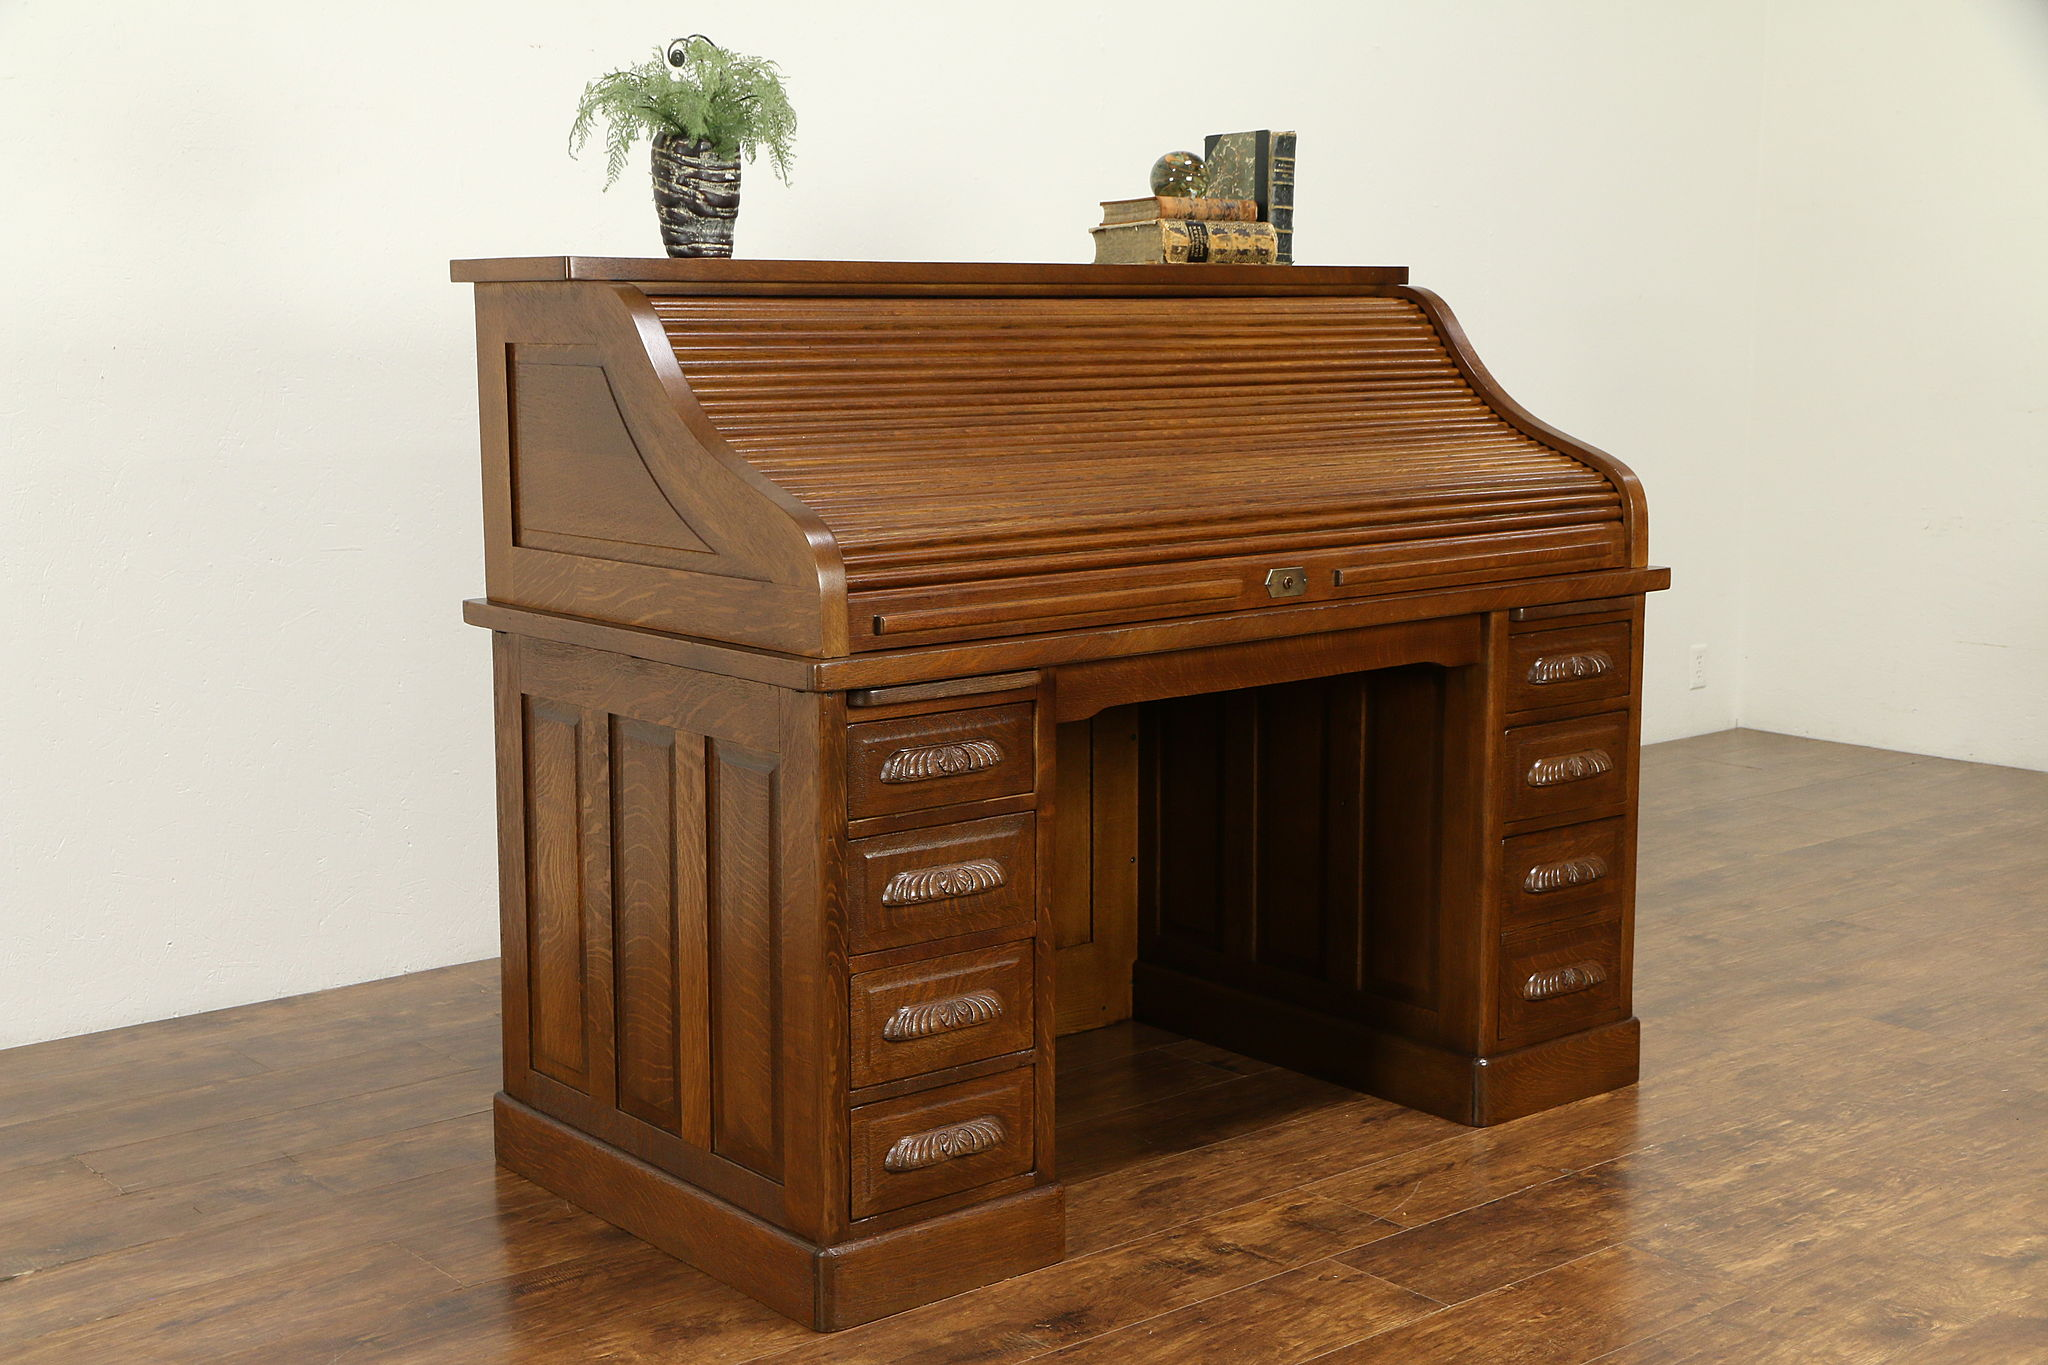 Pleasing Quartersawn Oak Antique Roll Top Library Or Office Desk Raised Panels 31763 Interior Design Ideas Clesiryabchikinfo